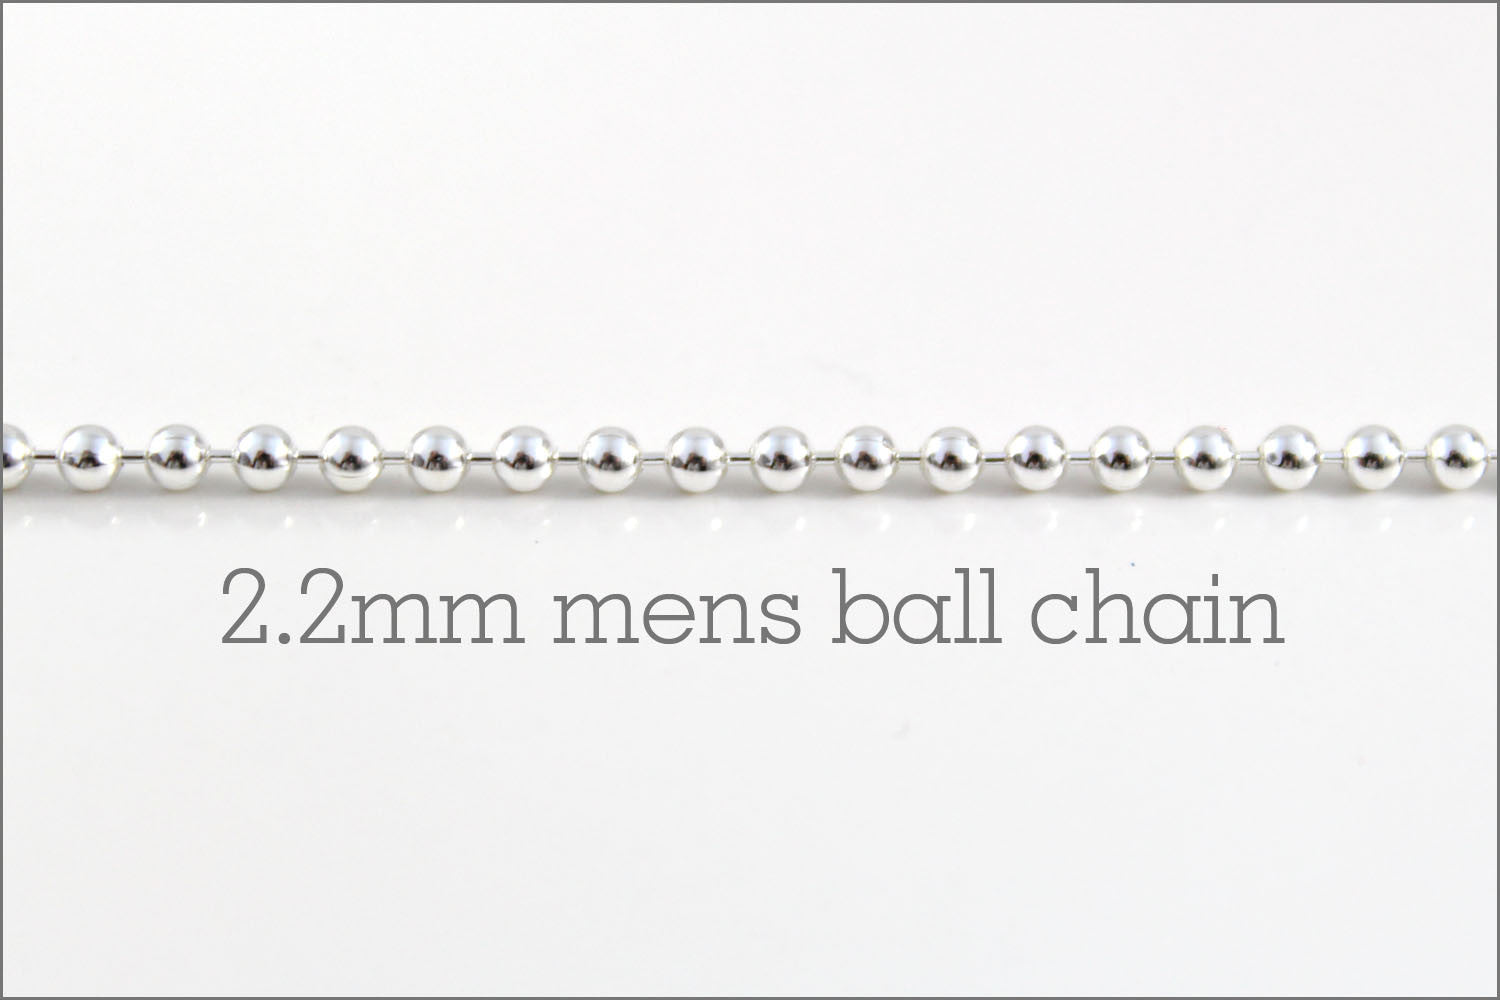 Men's 2.2mm Sterling Silver Ball Chain | New Chain or Chain Replacement, a.k.a. originals